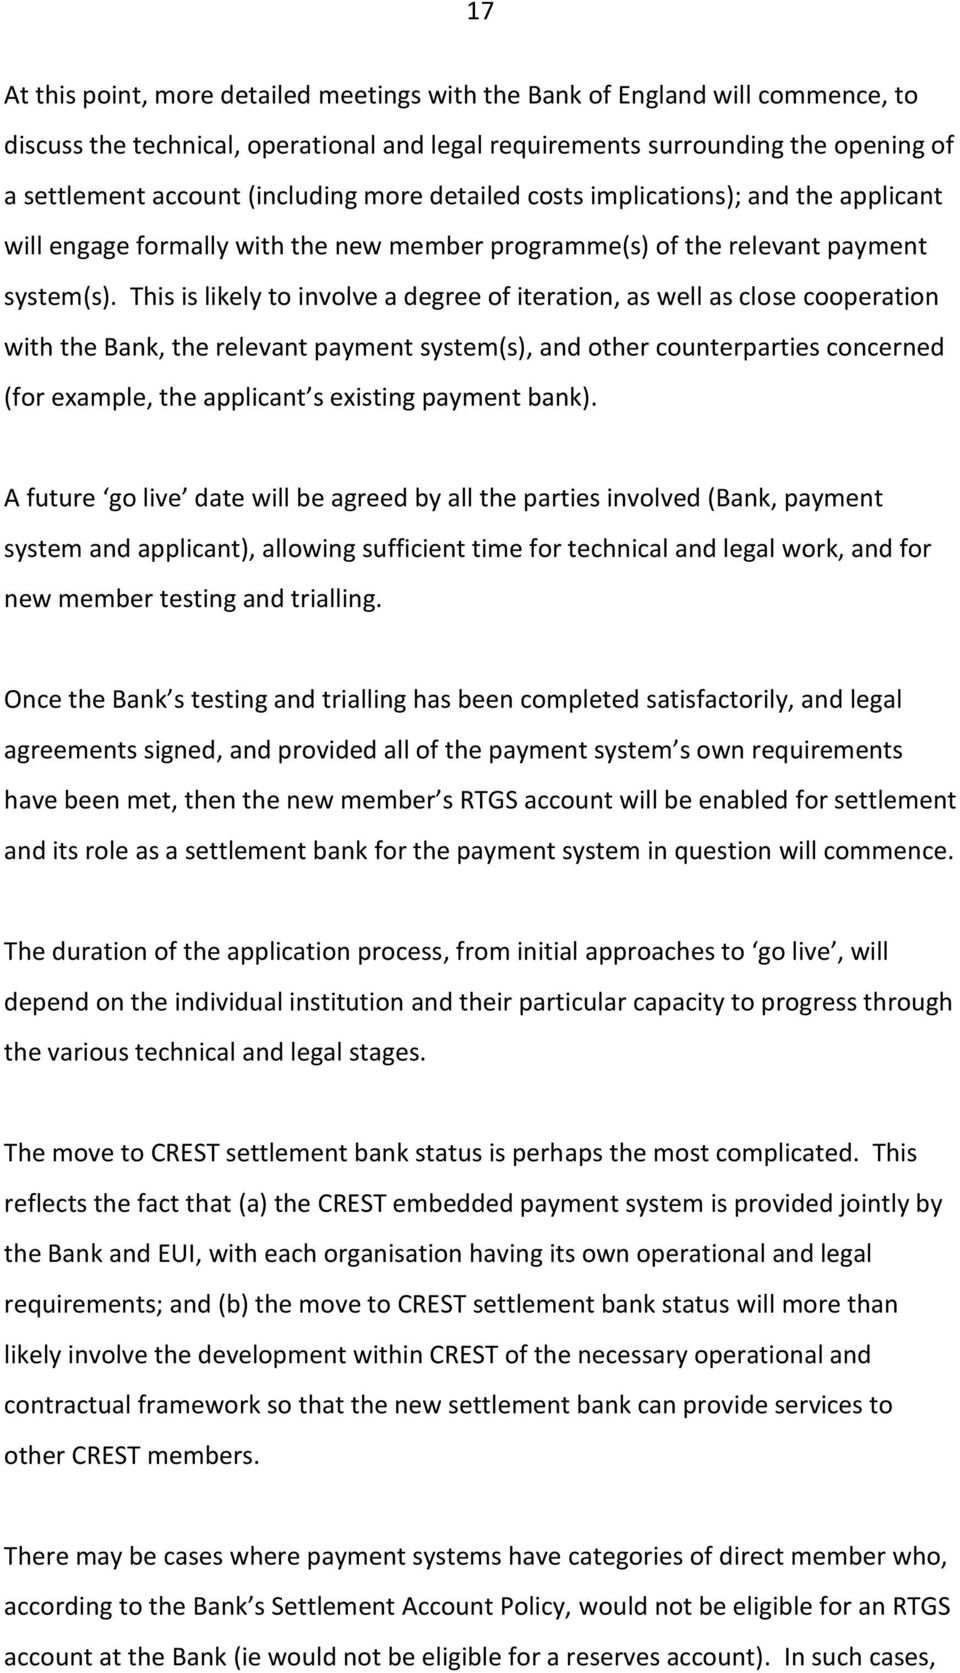 This is likely to involve a degree of iteration, as well as close cooperation with the Bank, the relevant payment system(s), and other counterparties concerned (for example, the applicant s existing